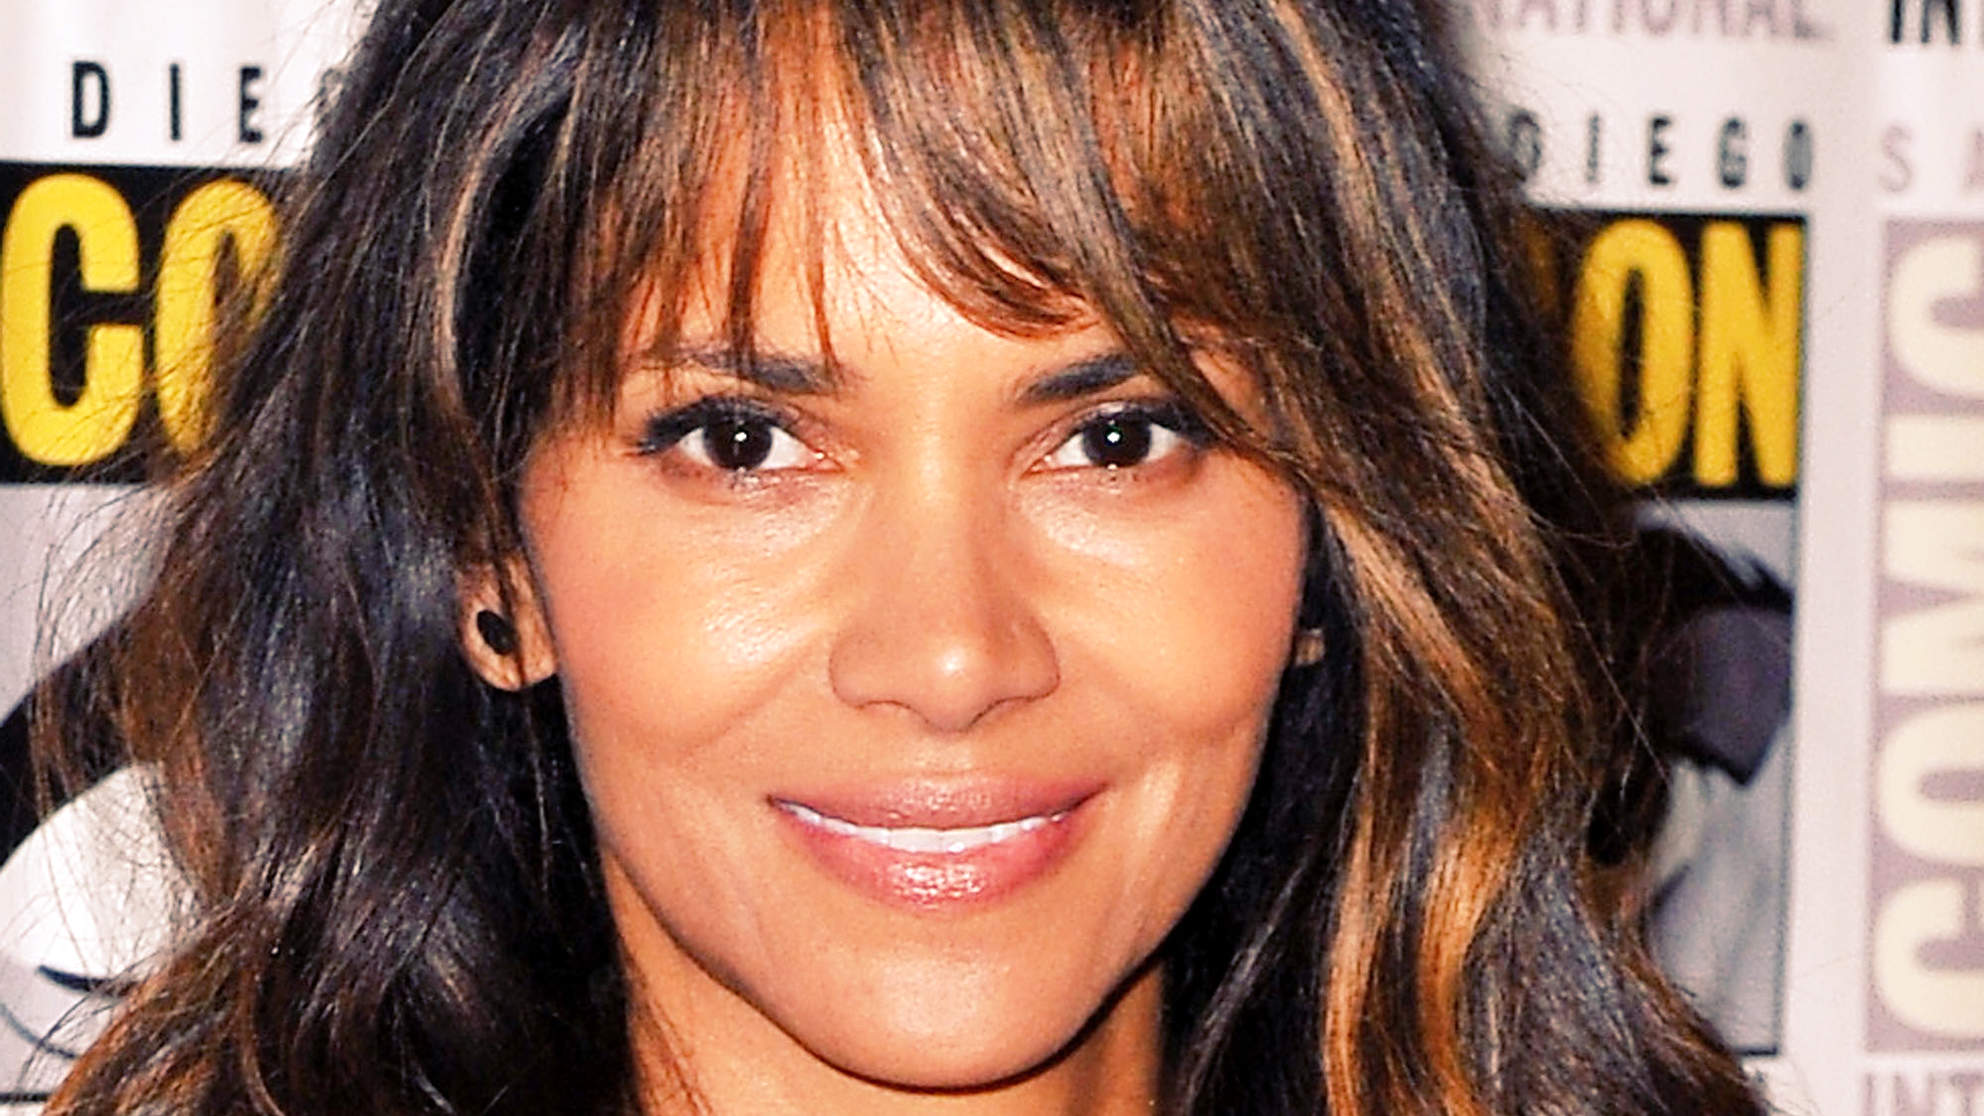 Halle Berry Just Posted a Bikini Selfie Wearing Her Favorite Anti-Aging Mask